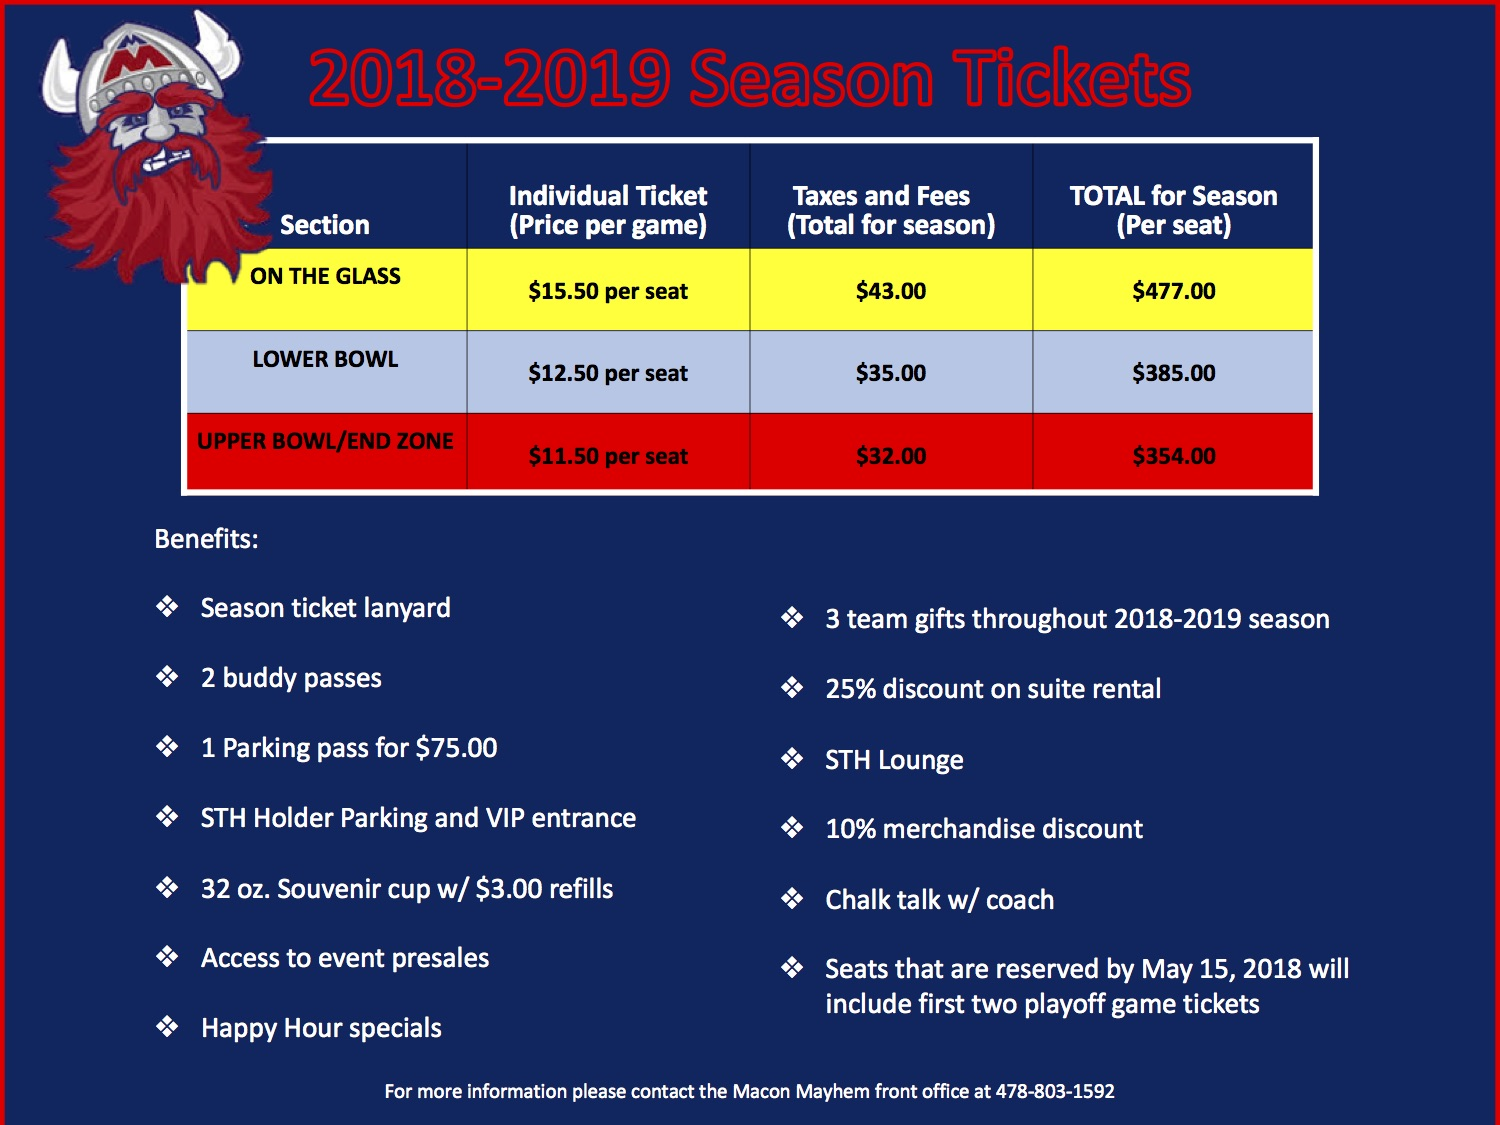 MM_18-19_Season_Tickets_(1).jpg